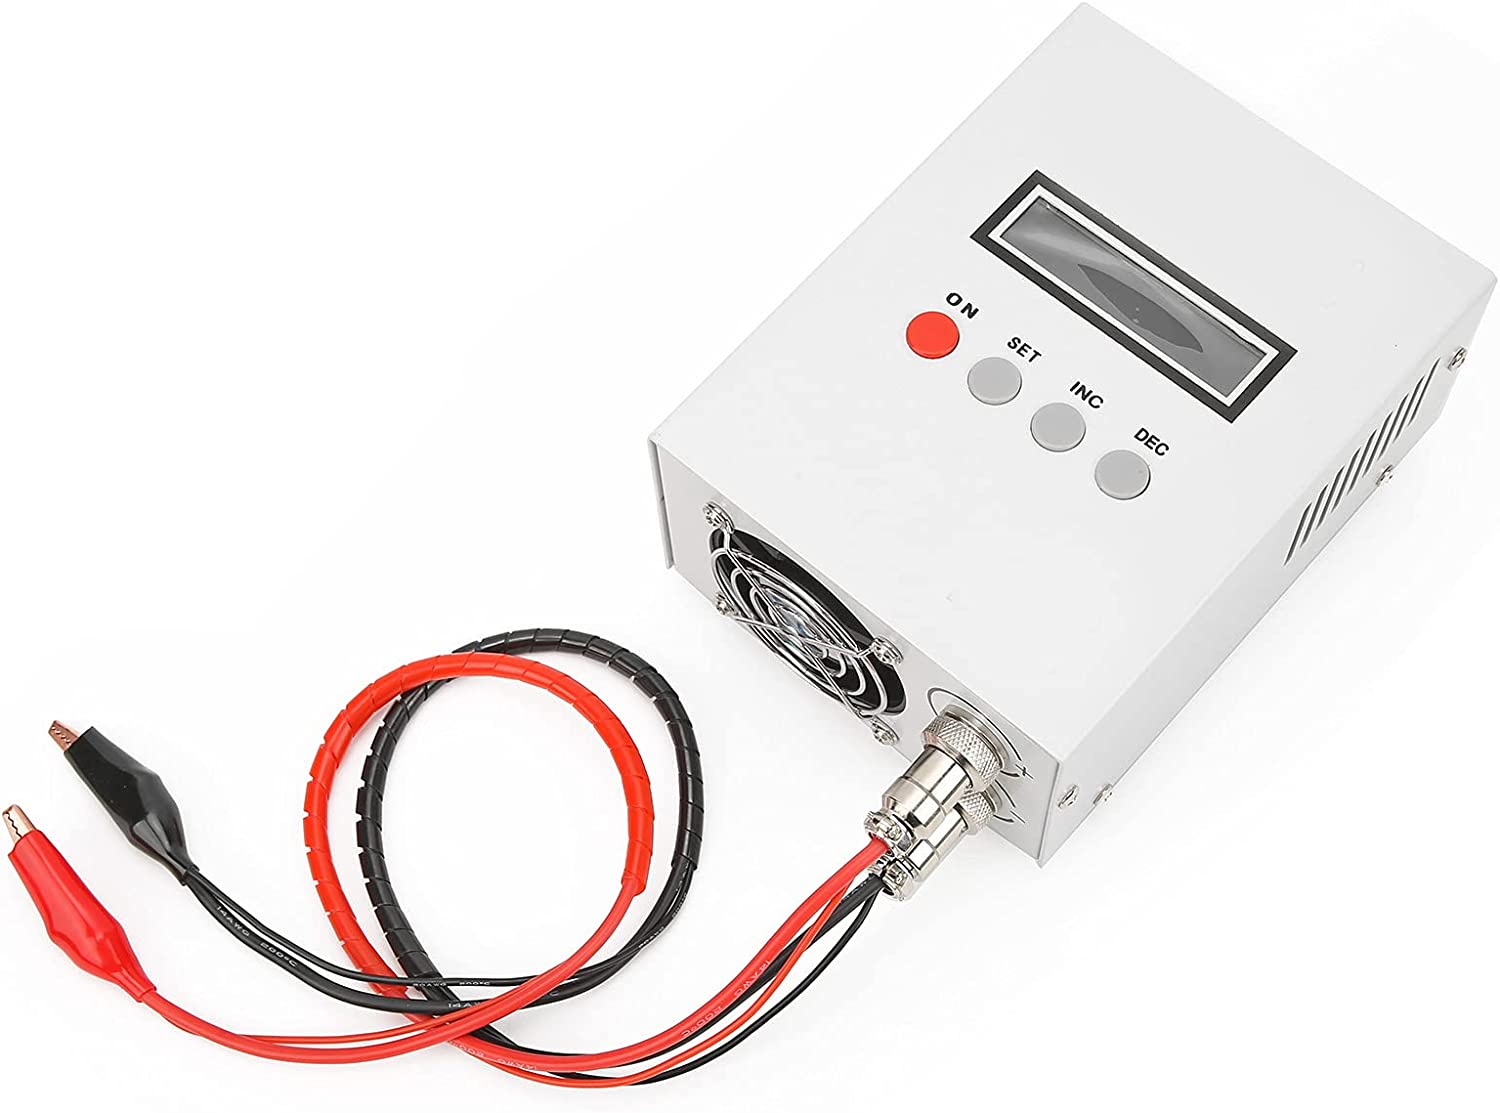 EBC‑A 20 Battery Capacity Tester Lead‑Acid Lithium Iron 5A Charge 20A Discharge Electronic Load Meter Four‑wire Support Computer AC 100‑240V((US Plug))